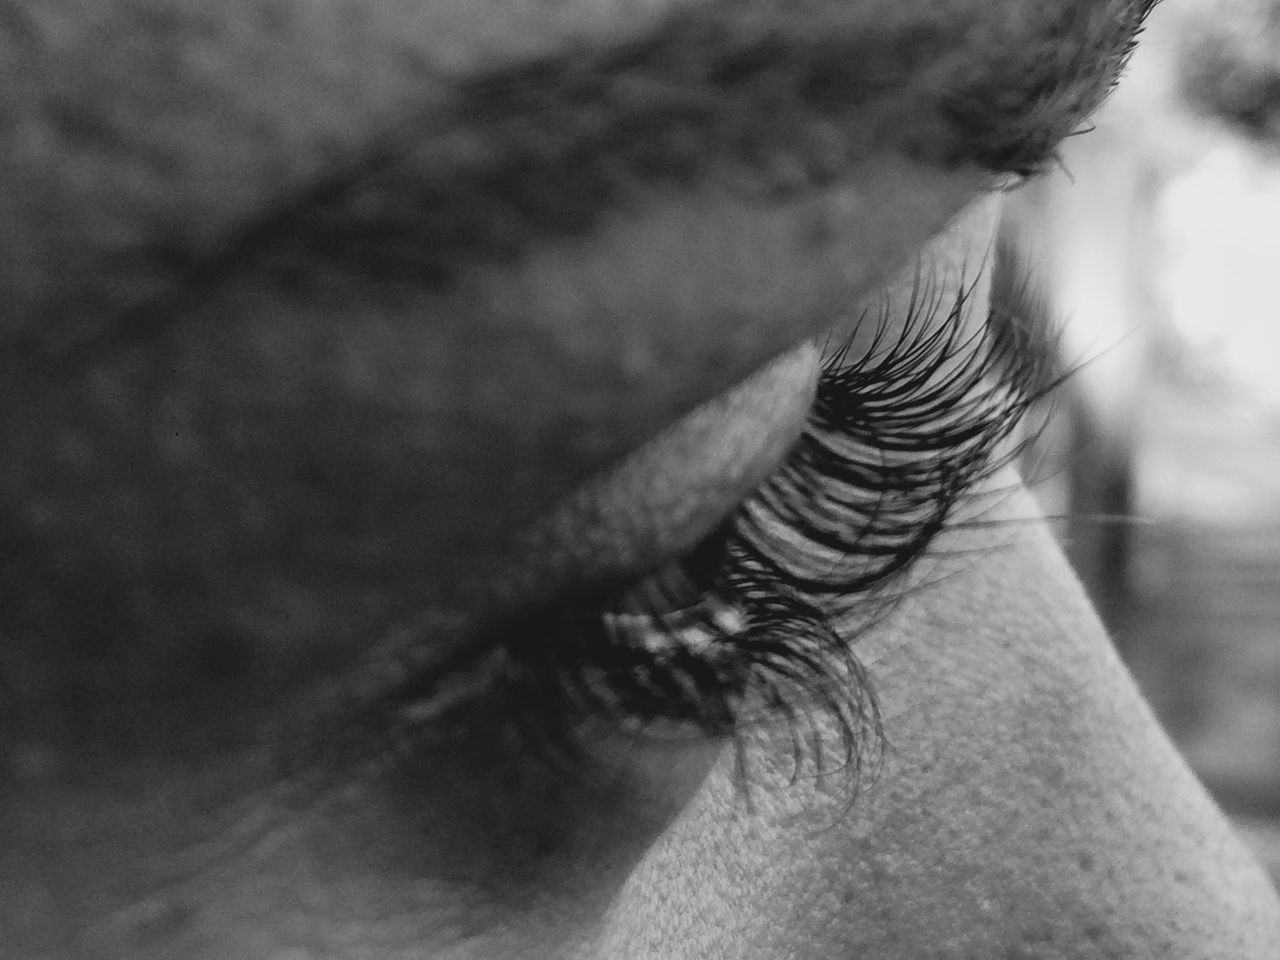 Blackandwhite Close-up Eye Headshot Human Face Part Of Serious Young Adult